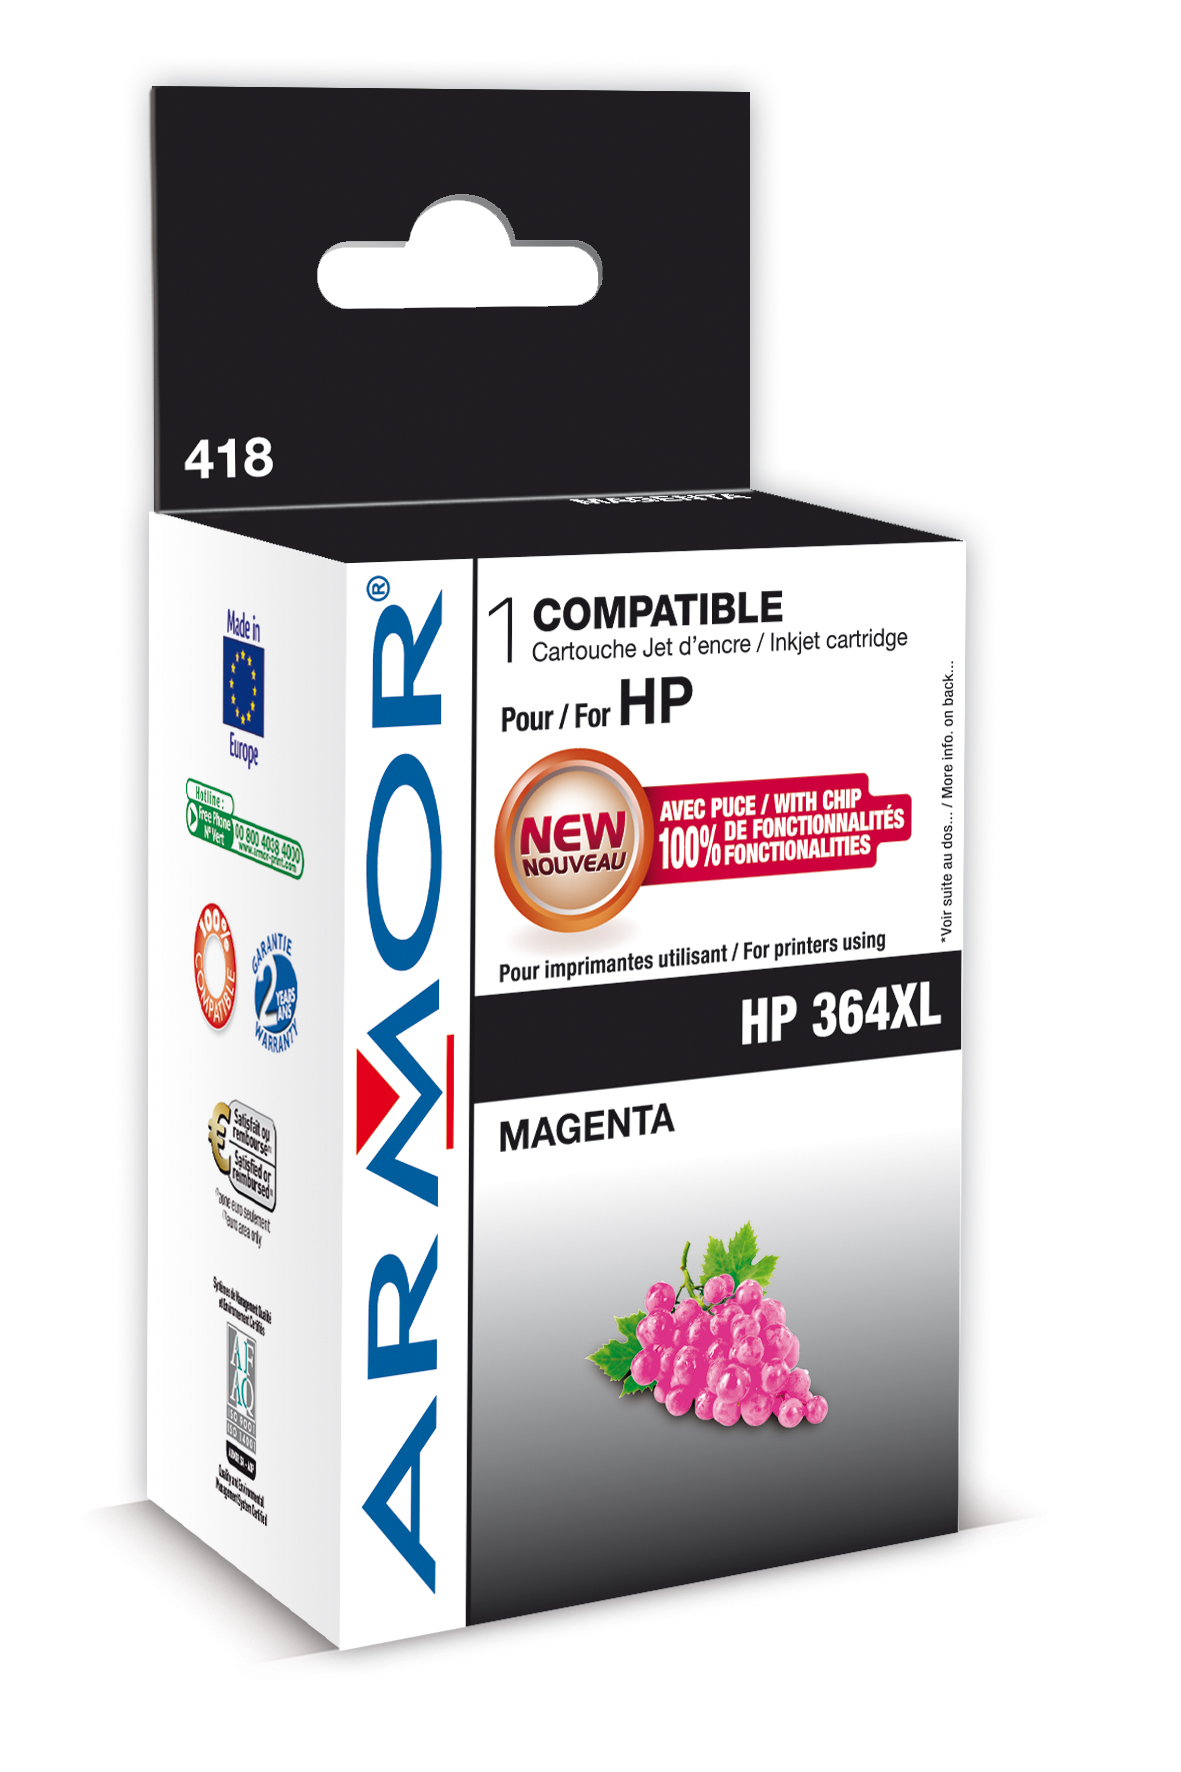 Armor ink-jet pro HP Photosmart B8550,12ml,Magenta